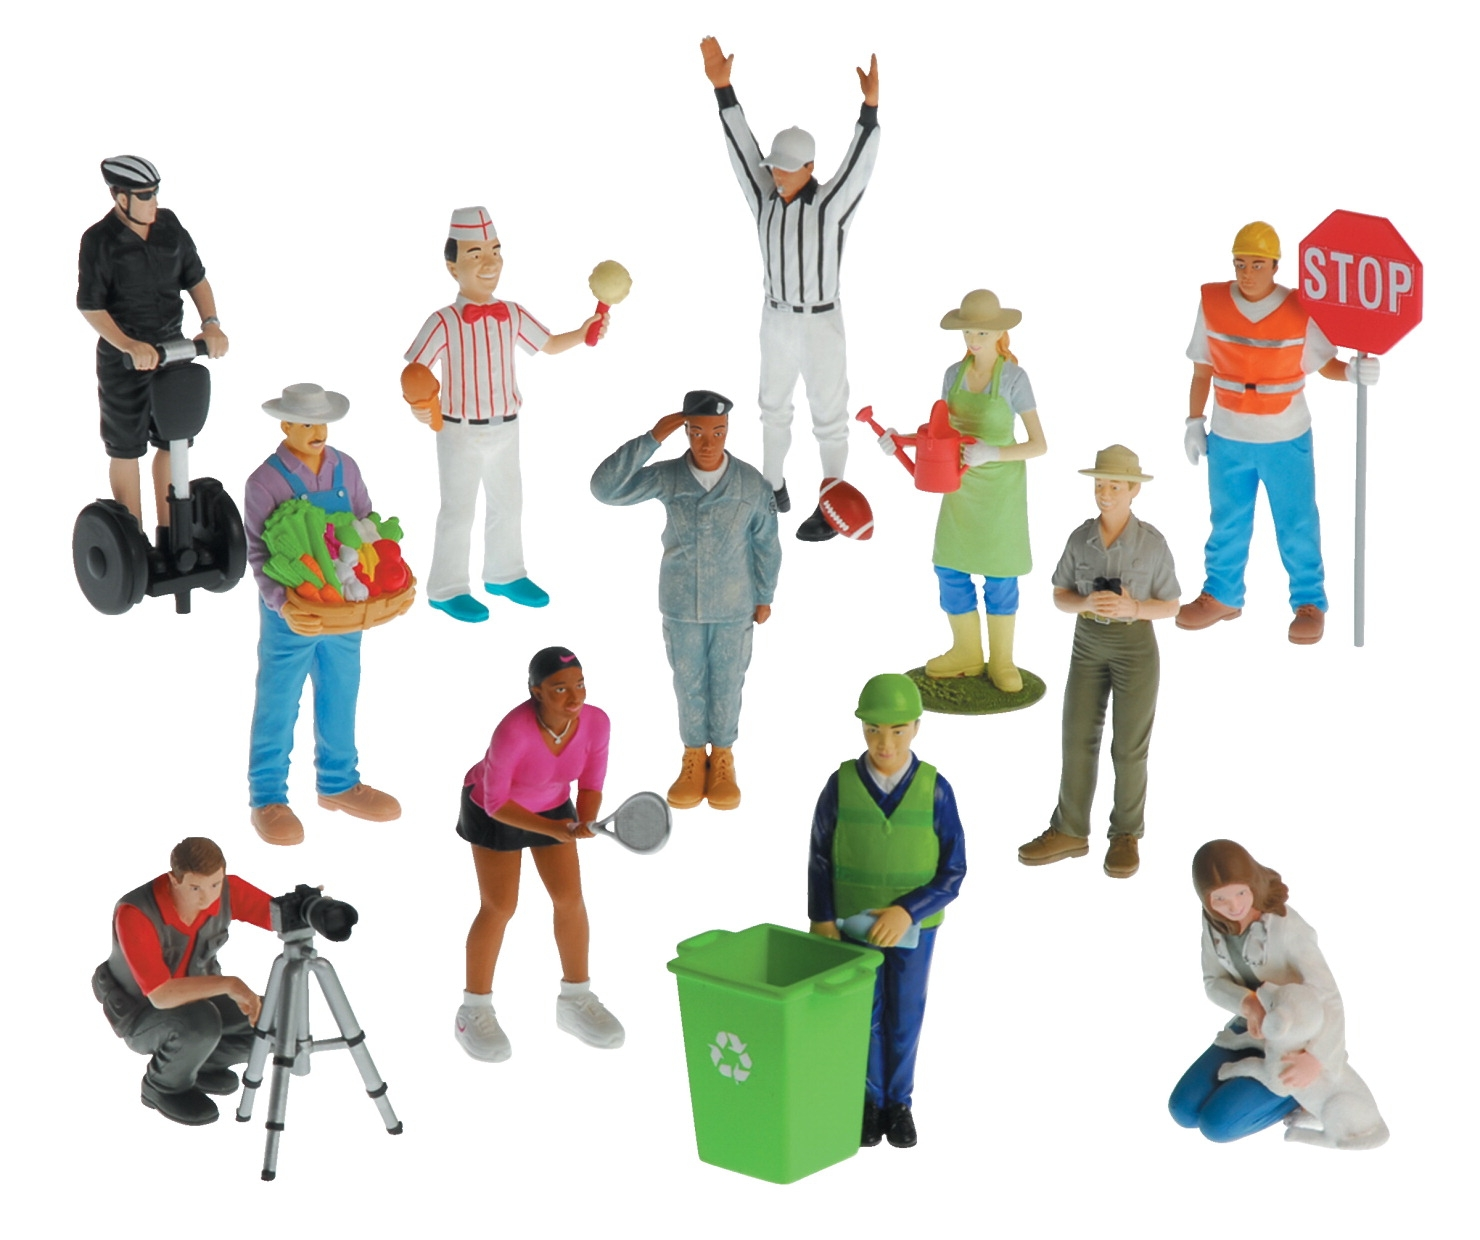 Marvel Education Career Figures; Set Of 12 - 1531973 - Toys Dolls Playsets & Toy Figures Puppet Theaters 1531973